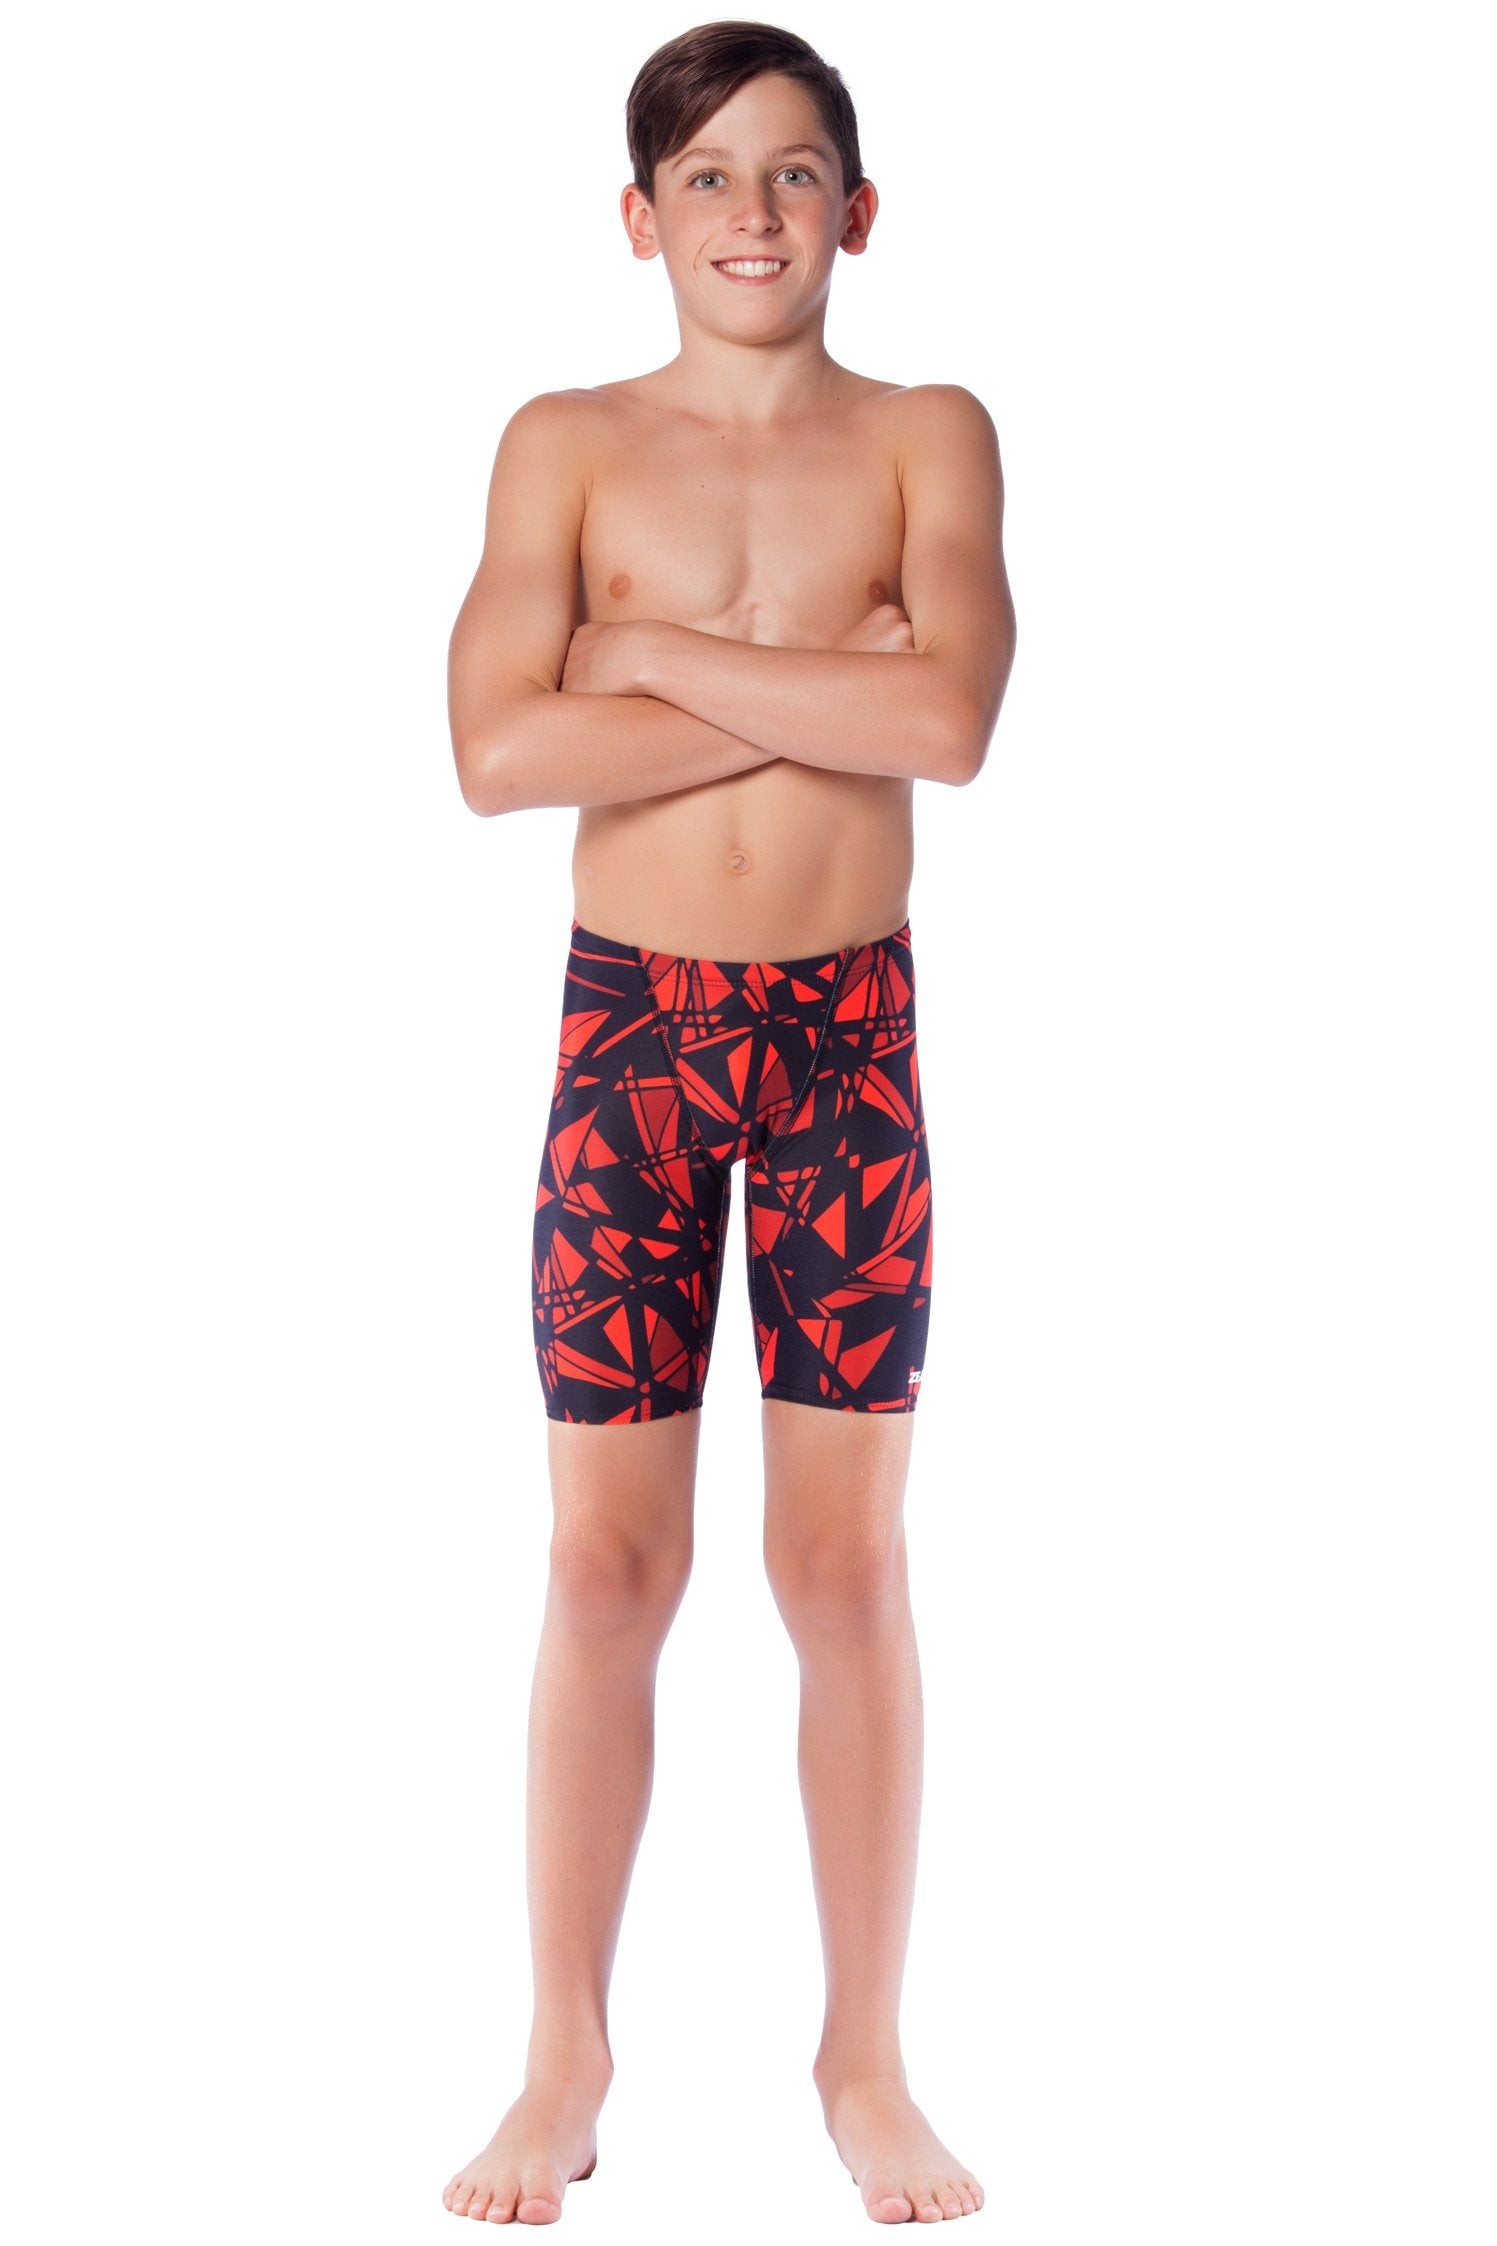 Phoenix - Boys 14 ONLY Boys Jammers - Shop Zealous Training Swimwear